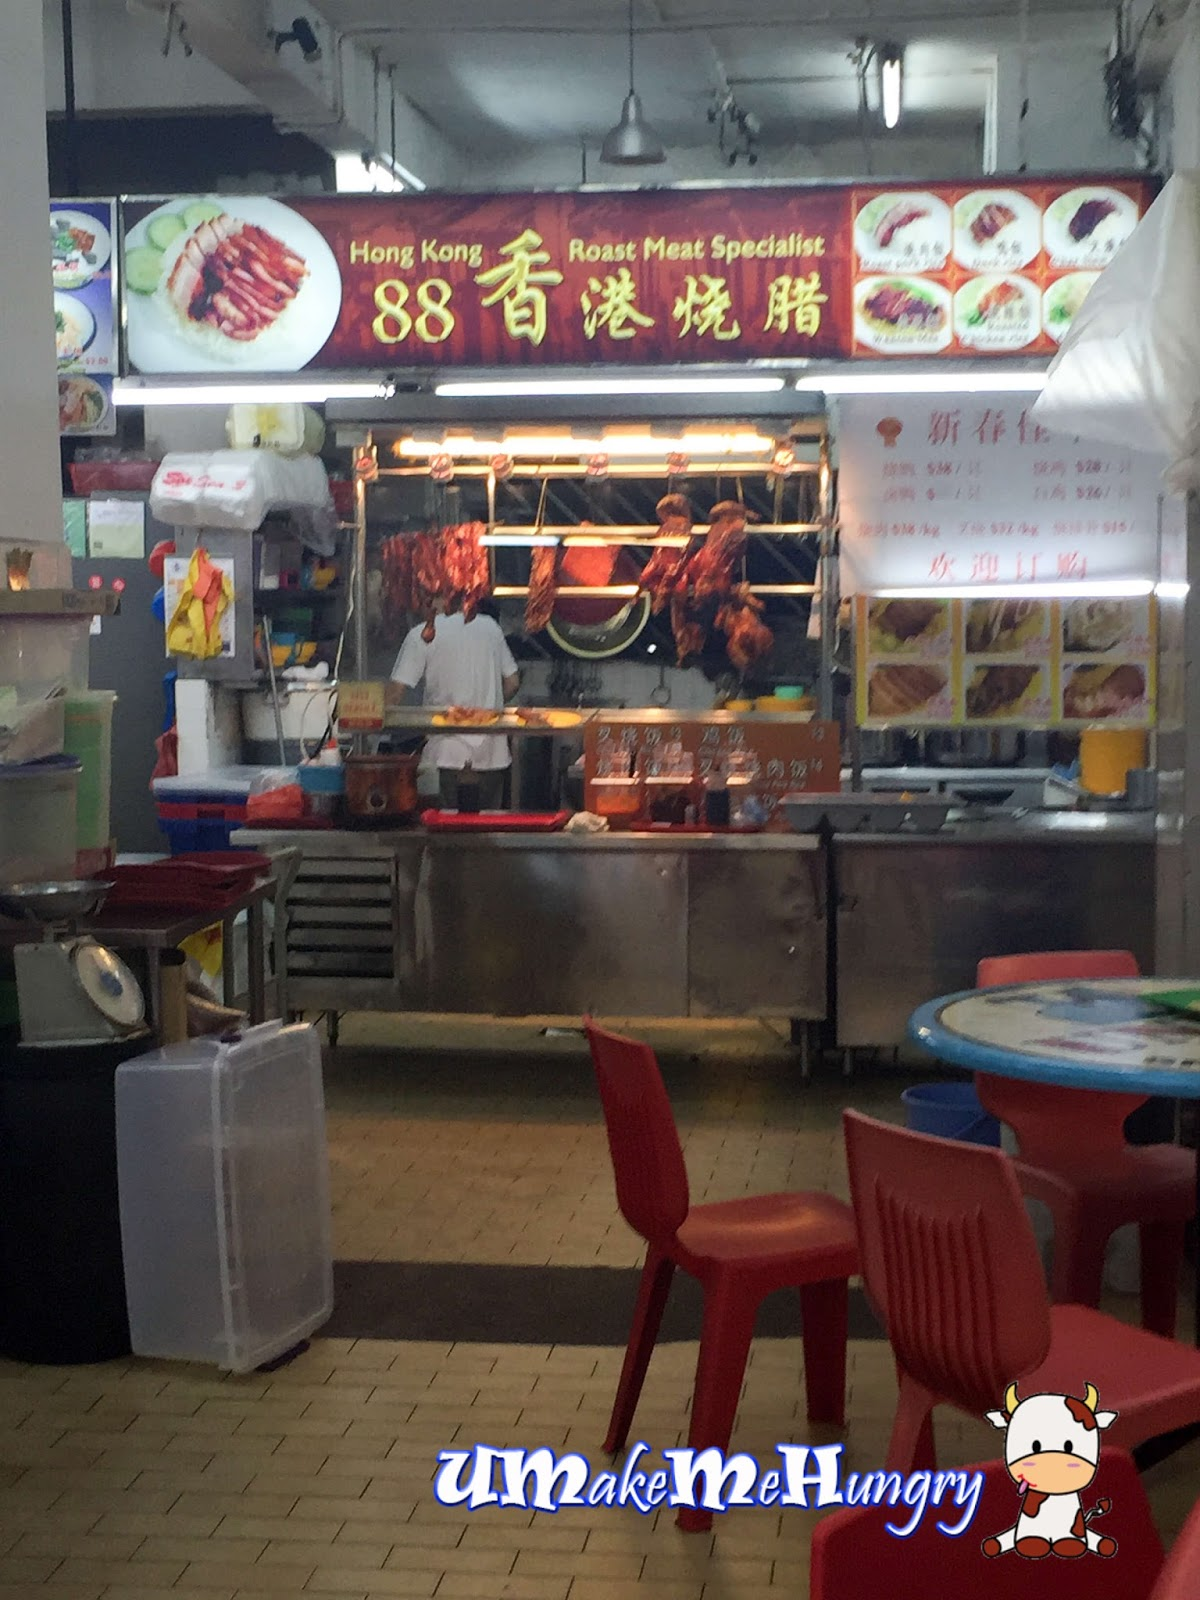 Food Travel Photography 88 Hong Kong Roast Meat Specialist – Meat Specialist